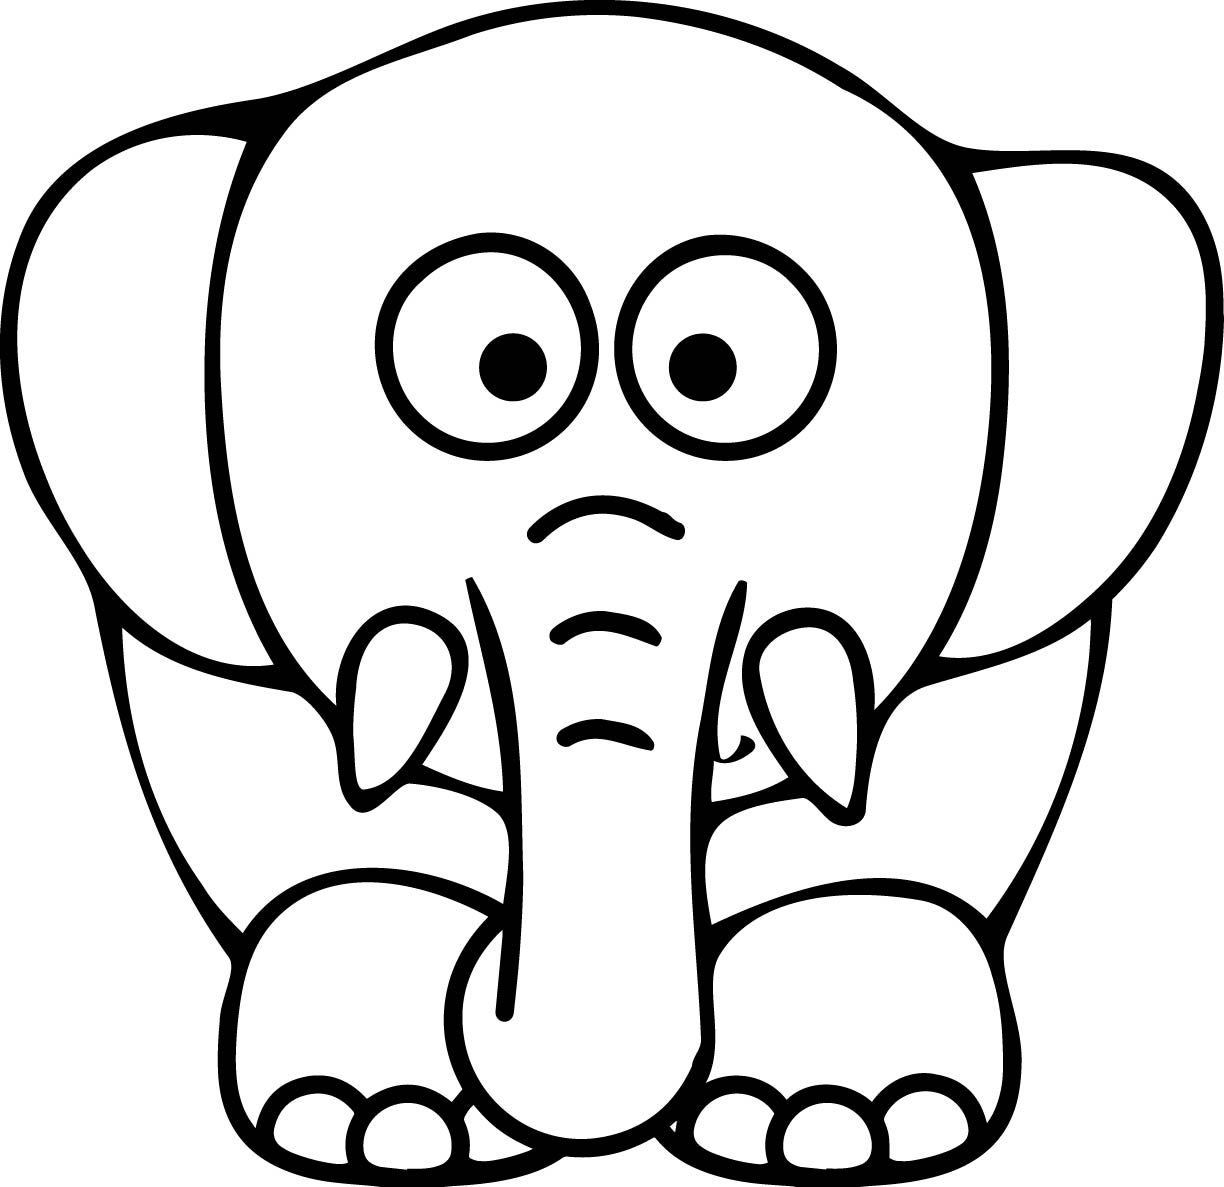 1224x1187 Cartoon Elephant Coloring Pages